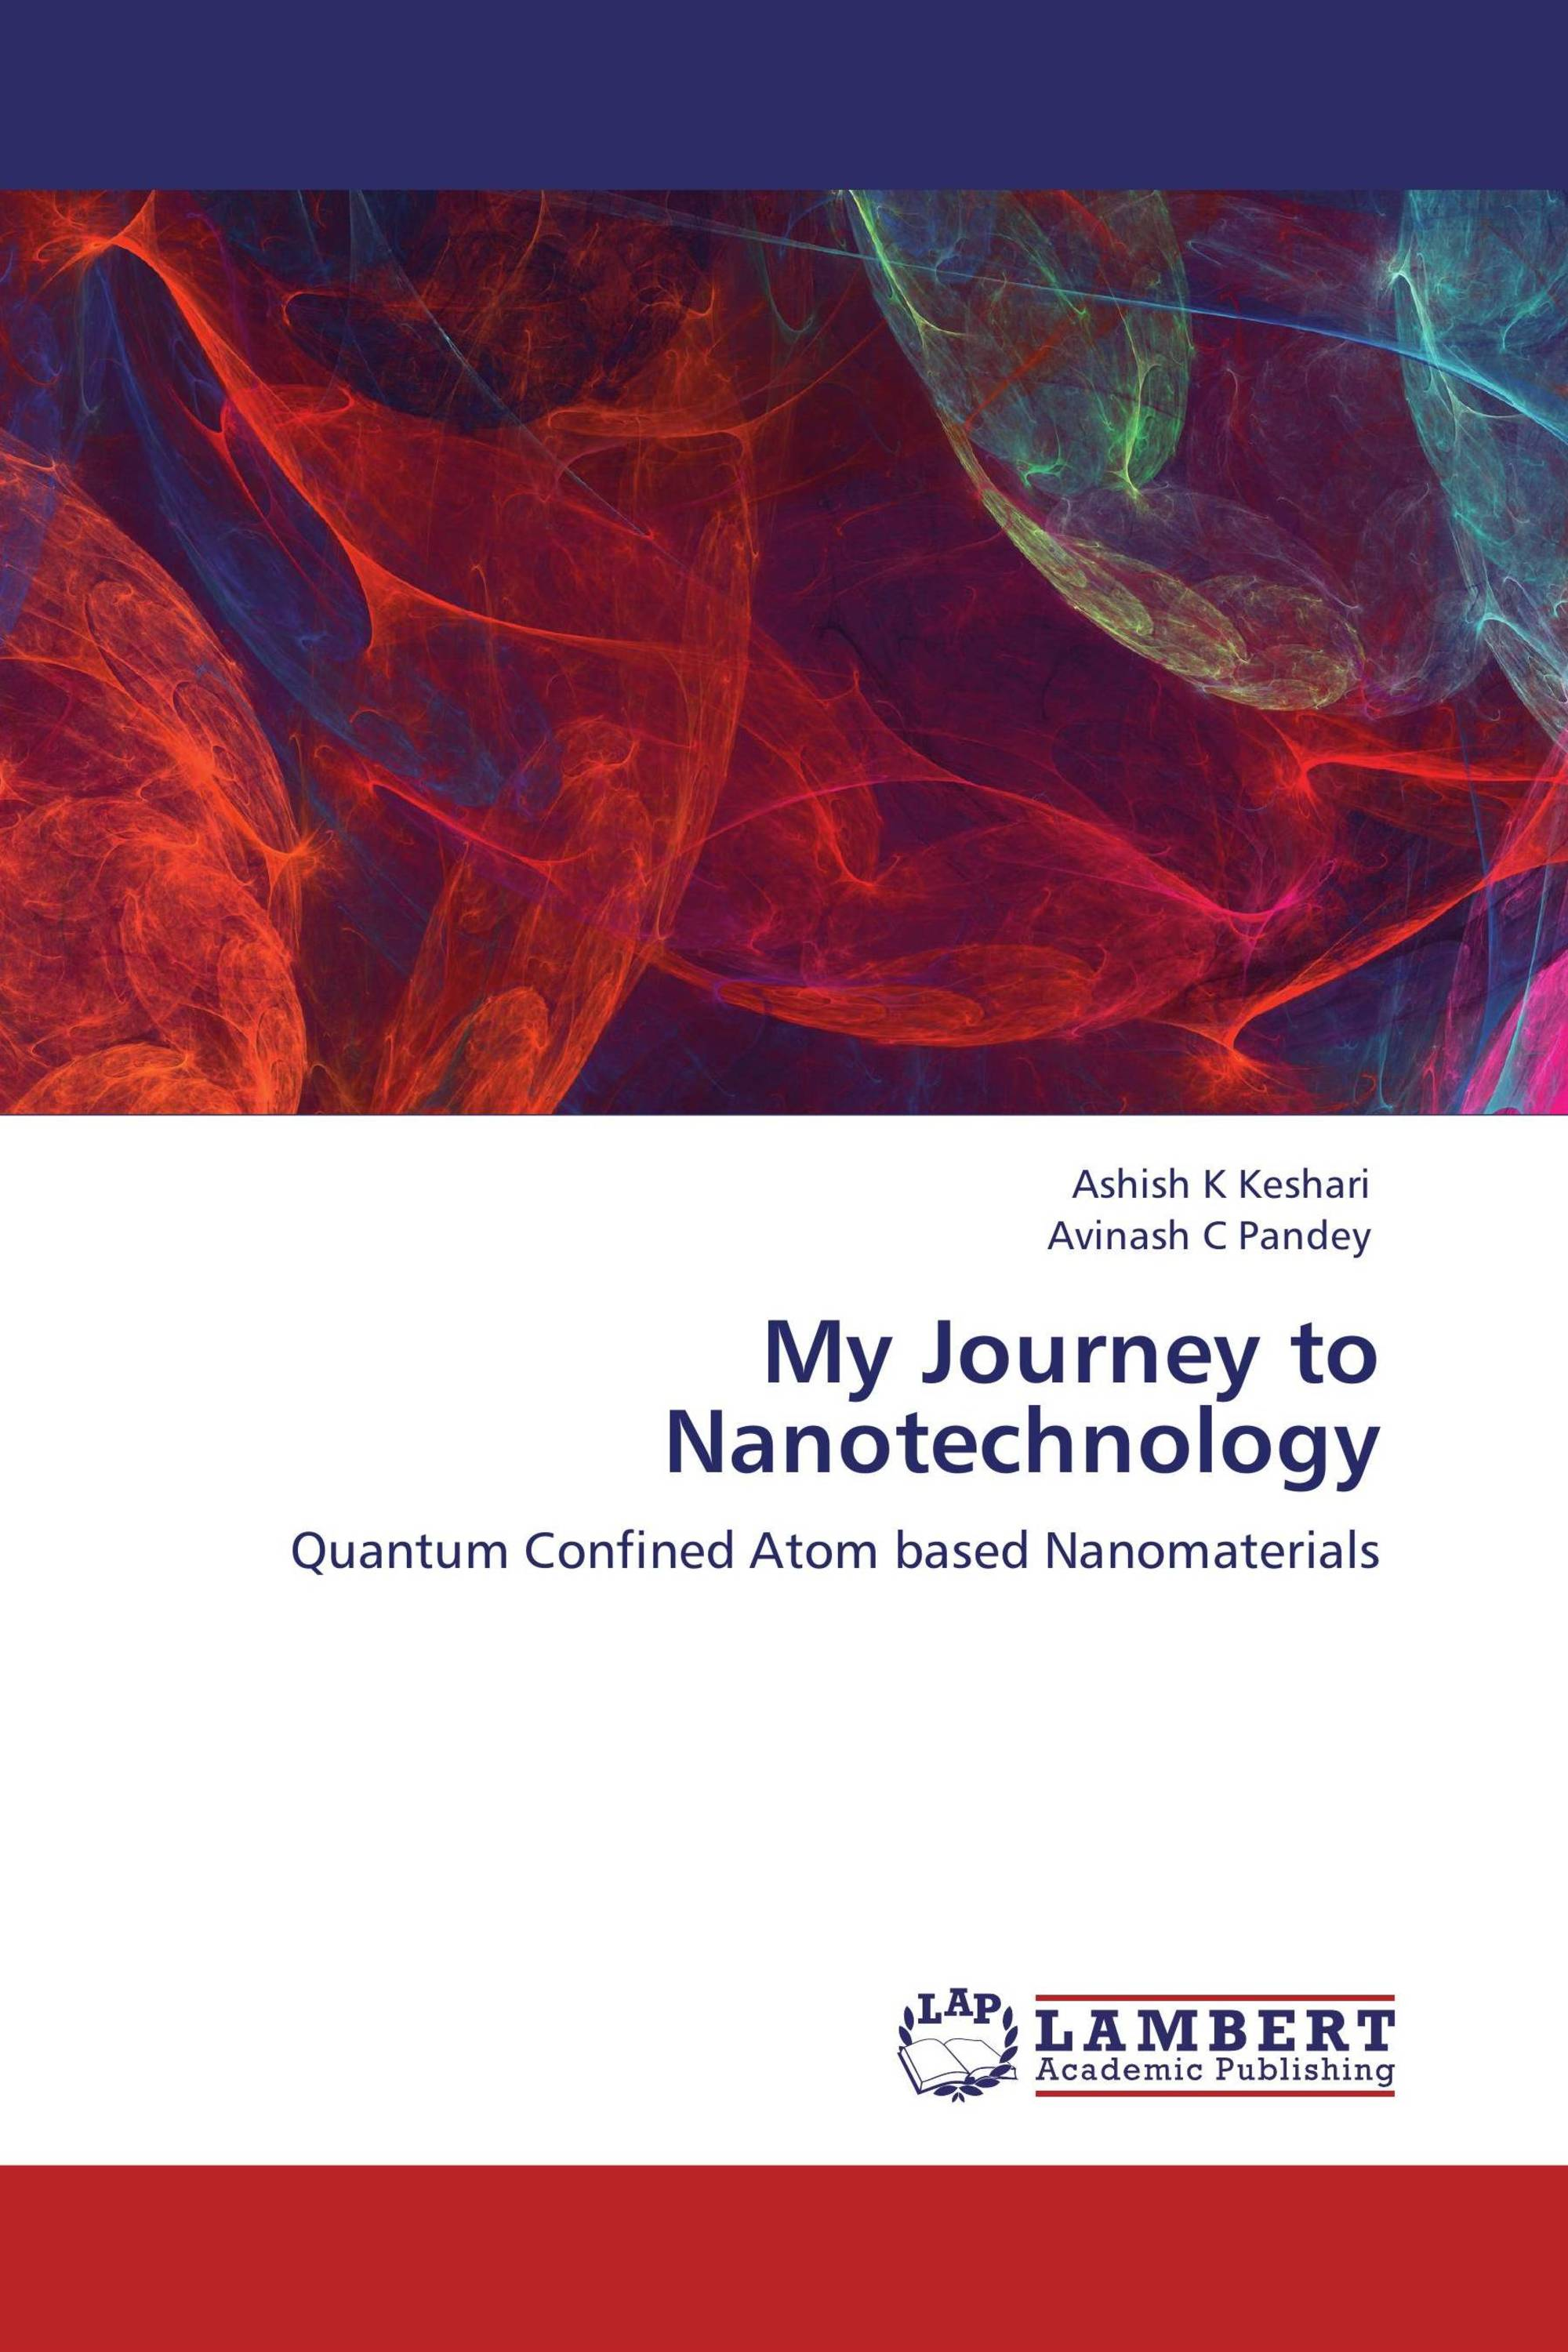 My Journey to Nanotechnology